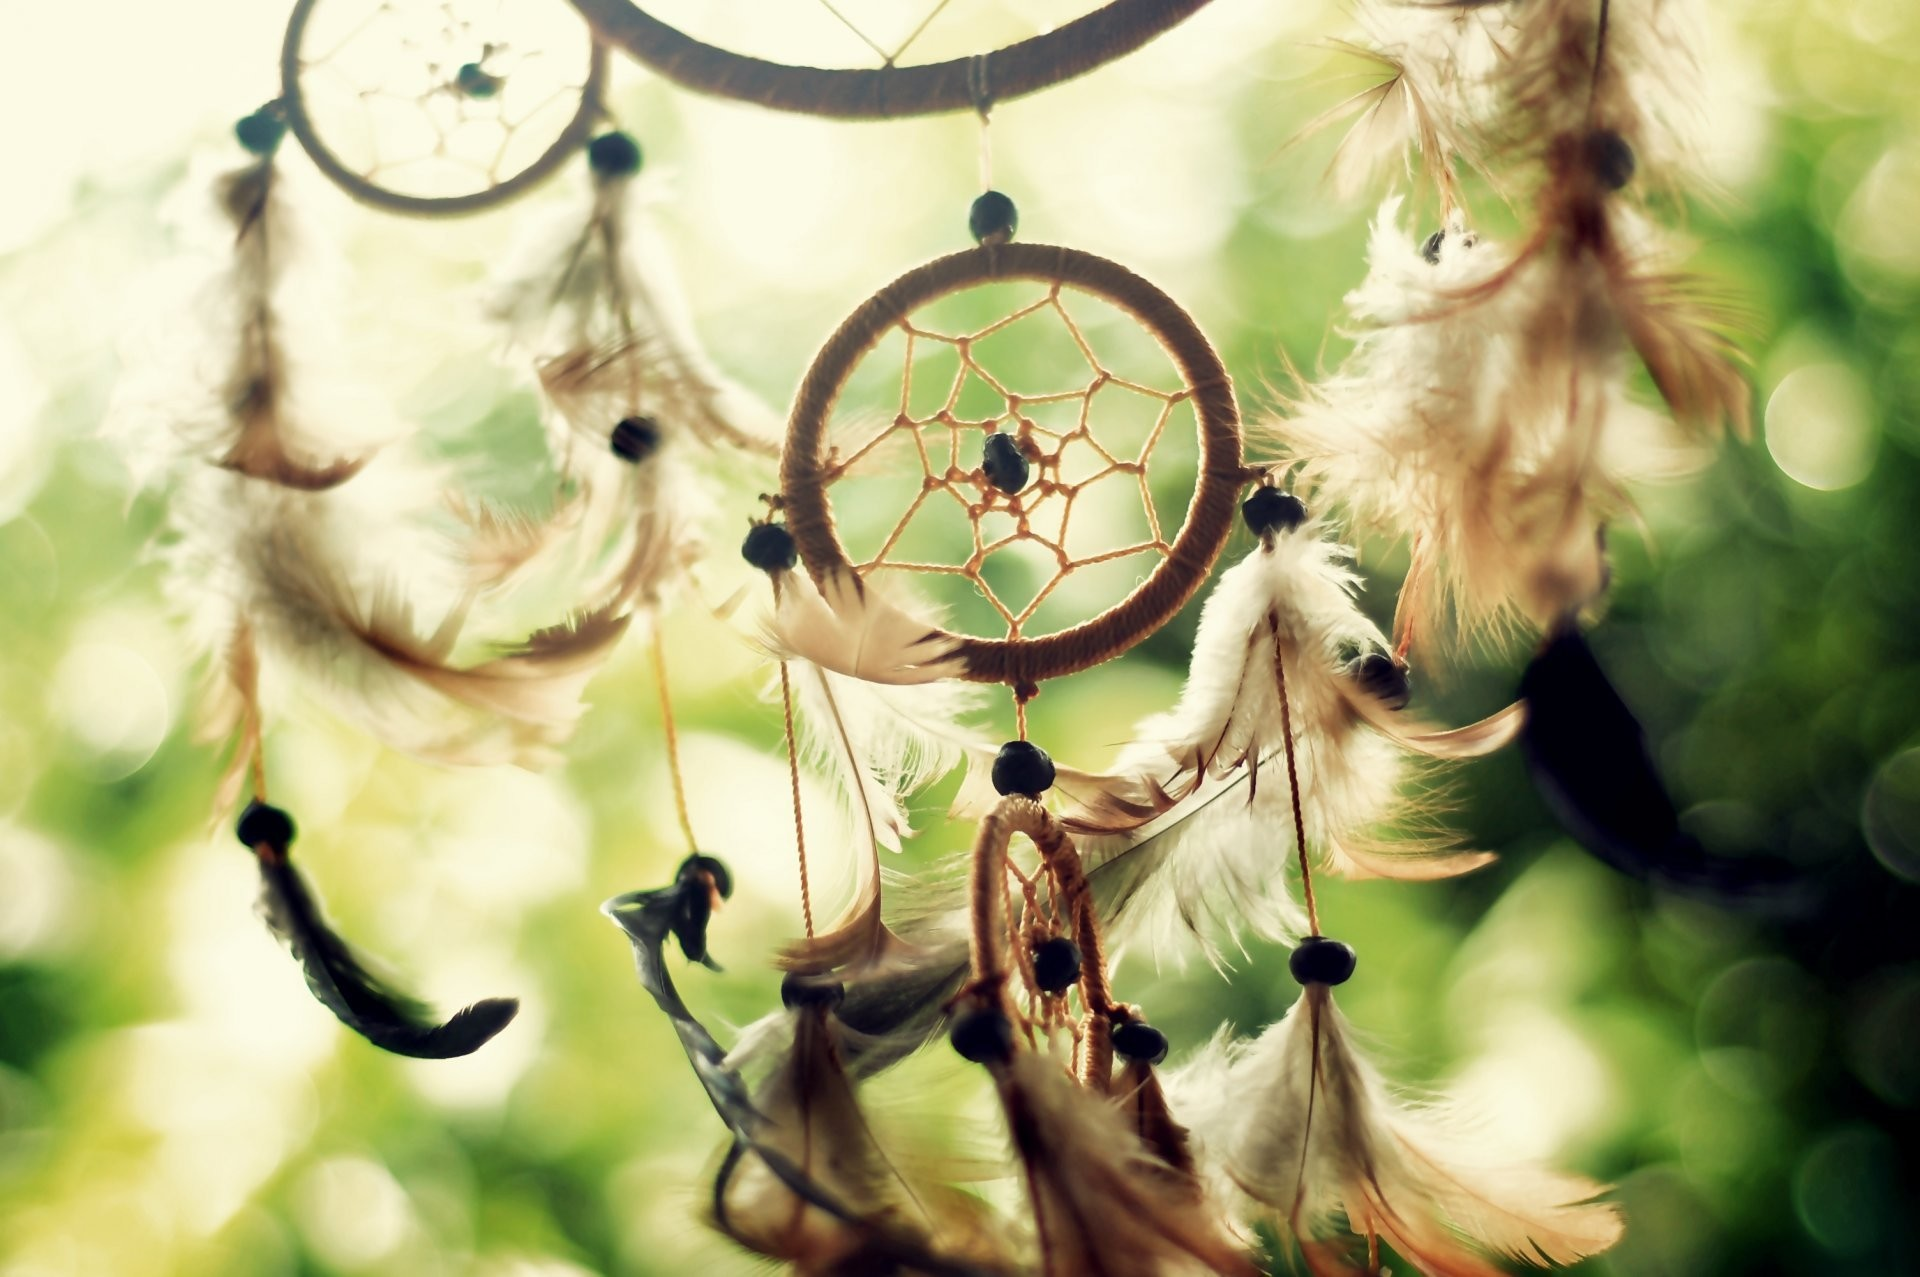 dreamcatcher dreamcatcher sun light